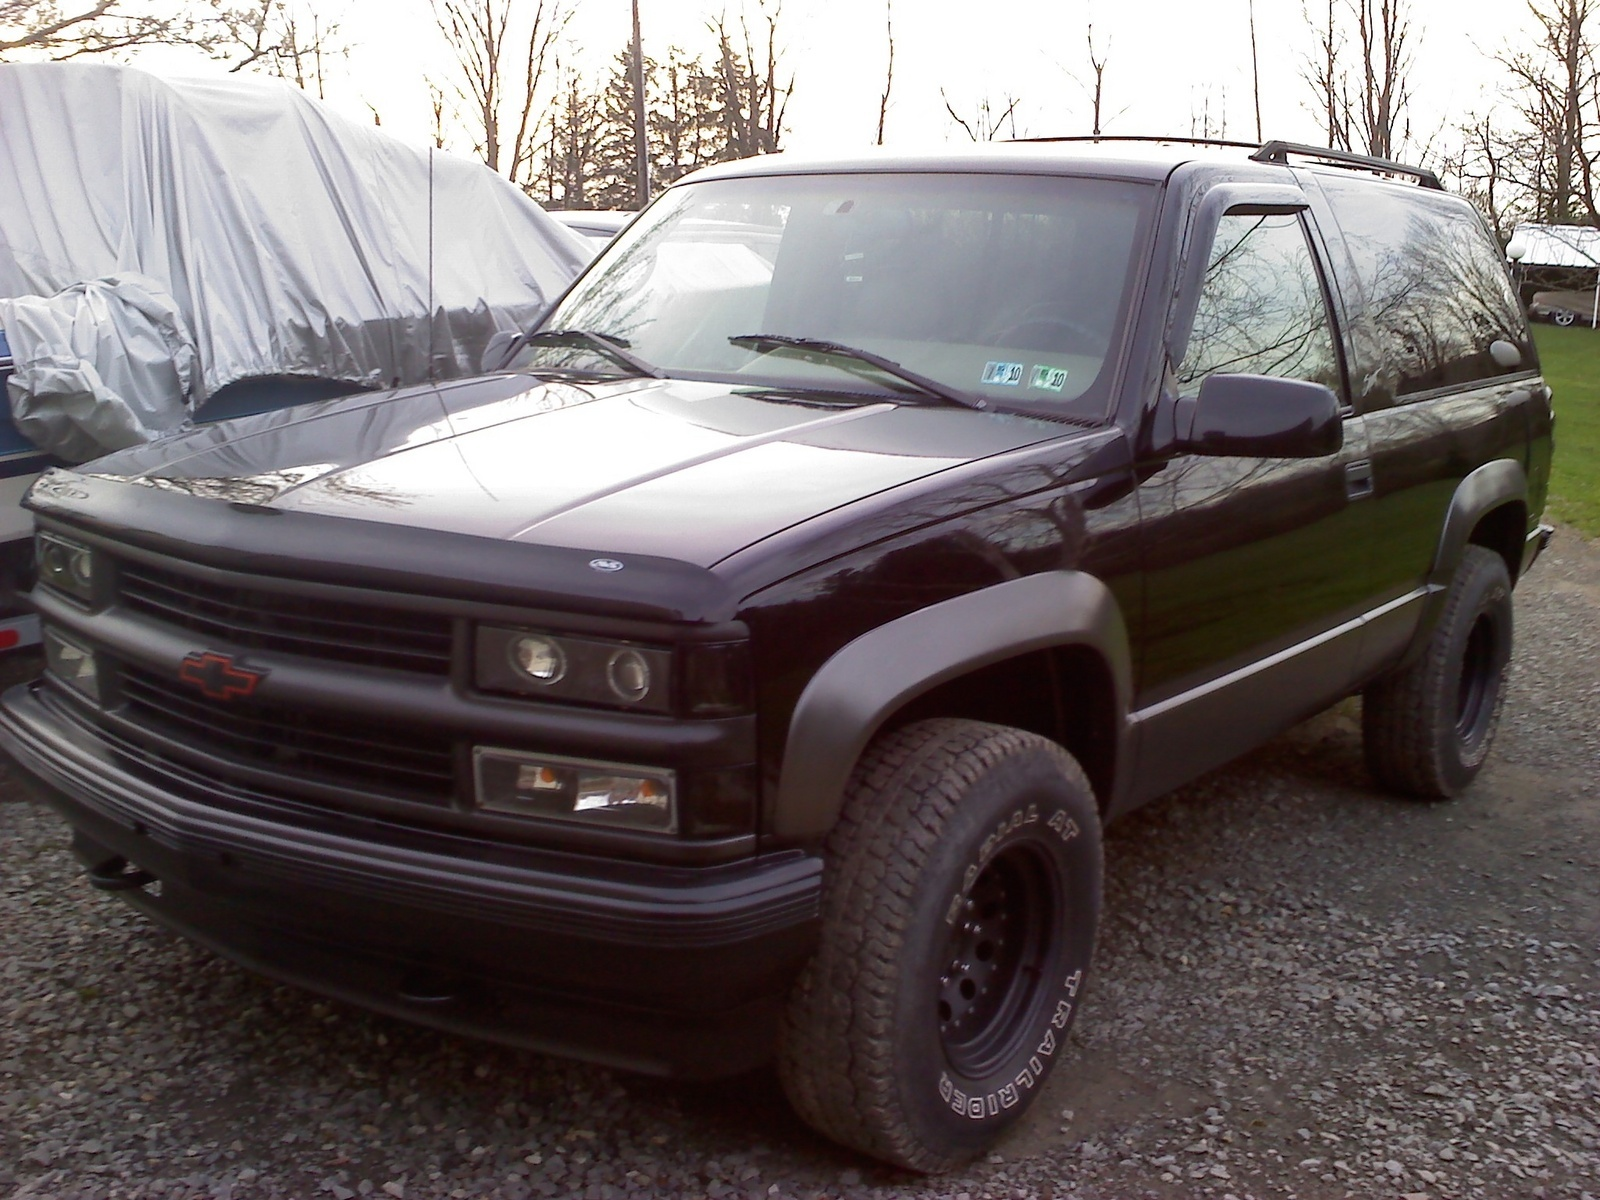 1996 chevrolet blazer user reviews cargurus 1996 chevrolet blazer user reviews